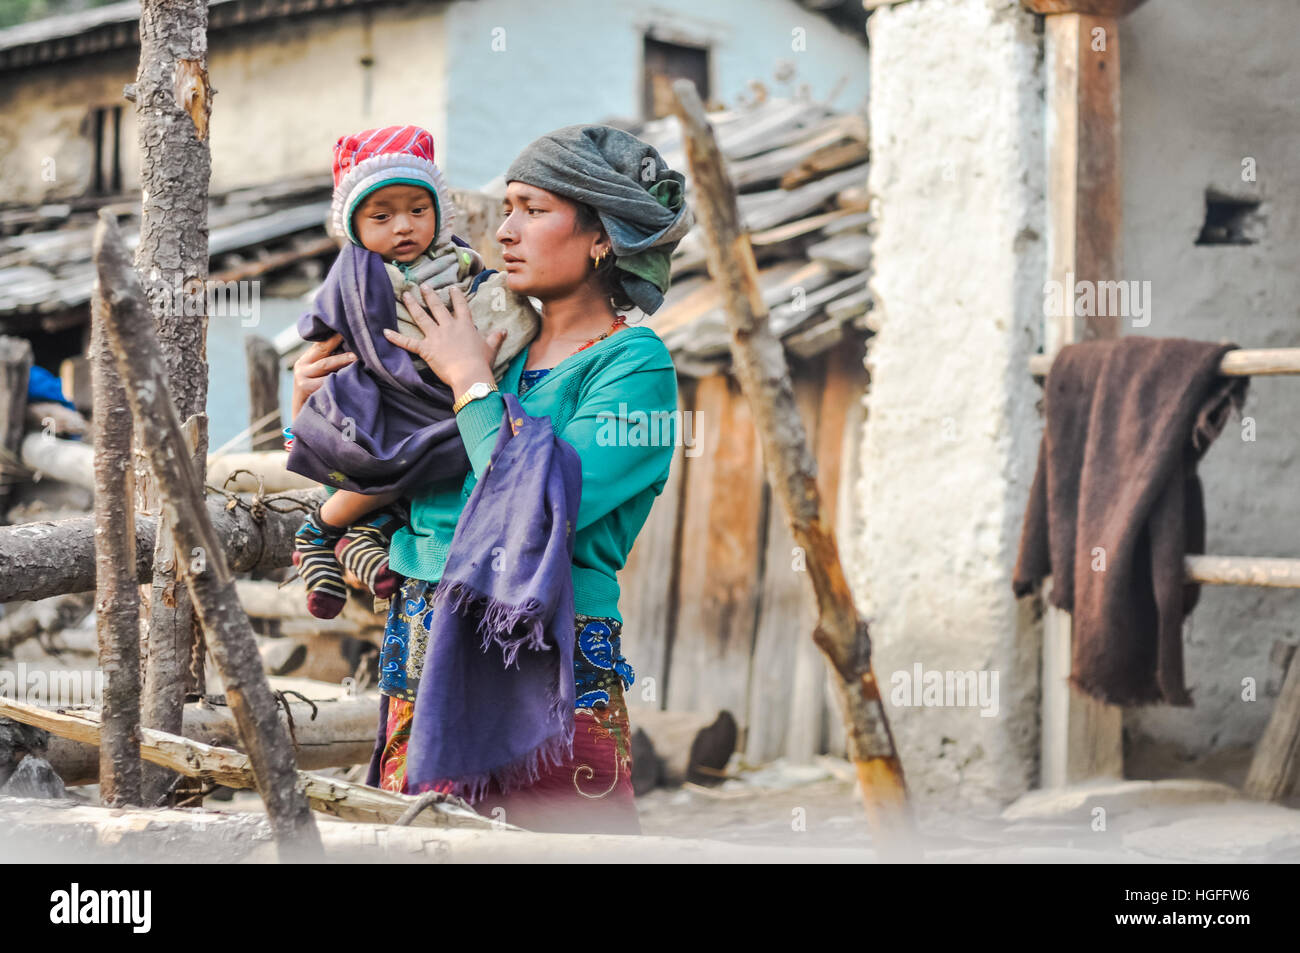 Dolpo, Nepal - circa May 2012: Native woman with grey headcloth wears green sweatshirt and holds her child covered - Stock Image